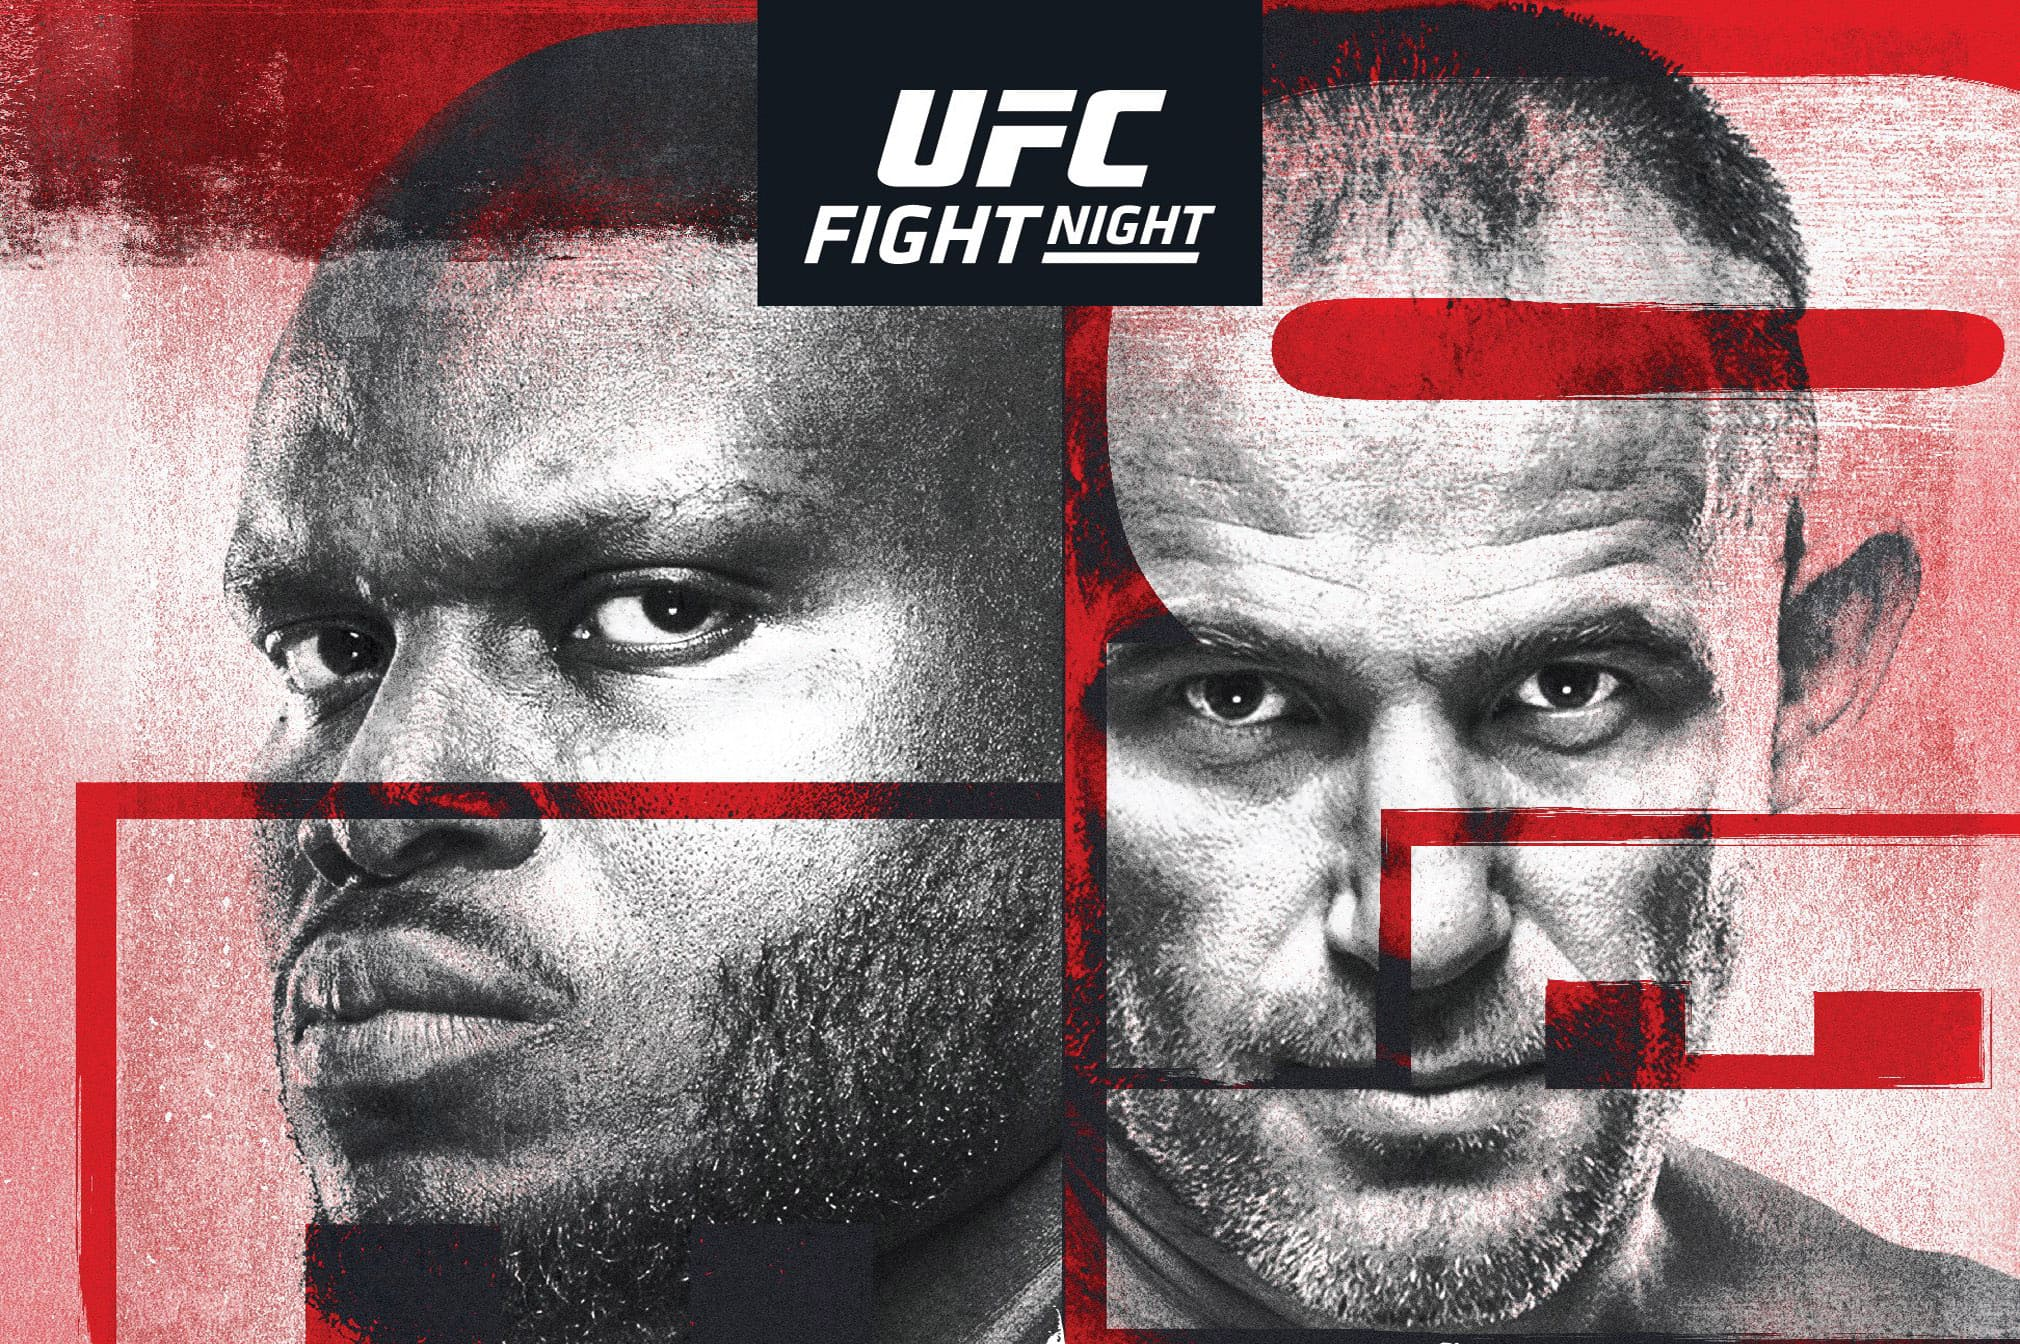 UFC Fight Night: Льюис vs Олейник